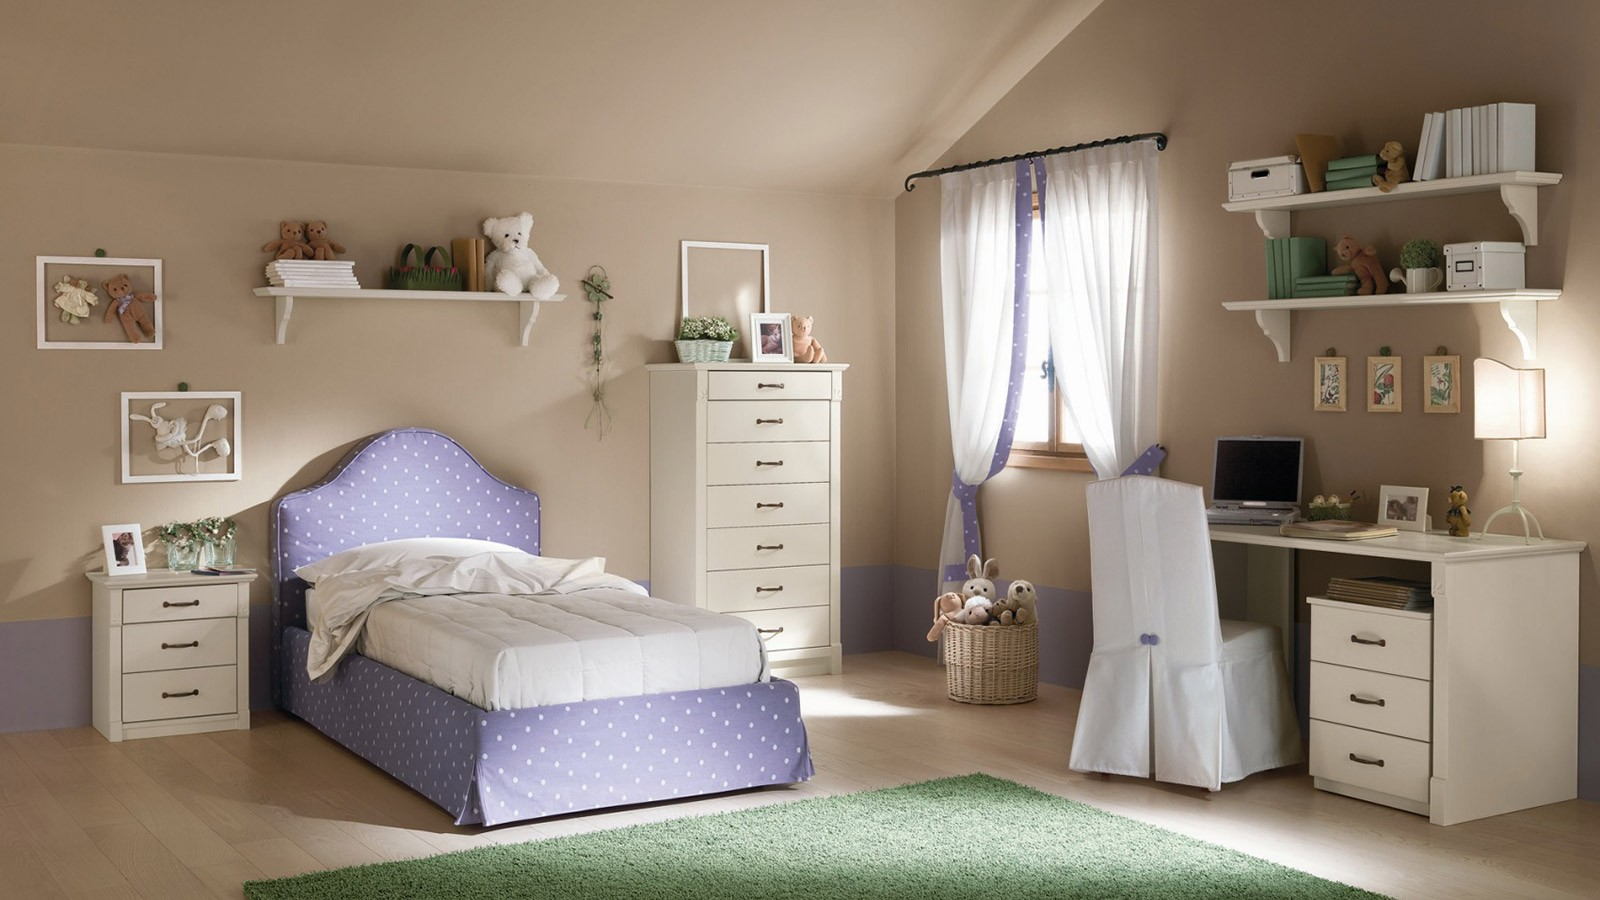 Camere da letto per single camere moderne per bambini for Camere per single arredamento